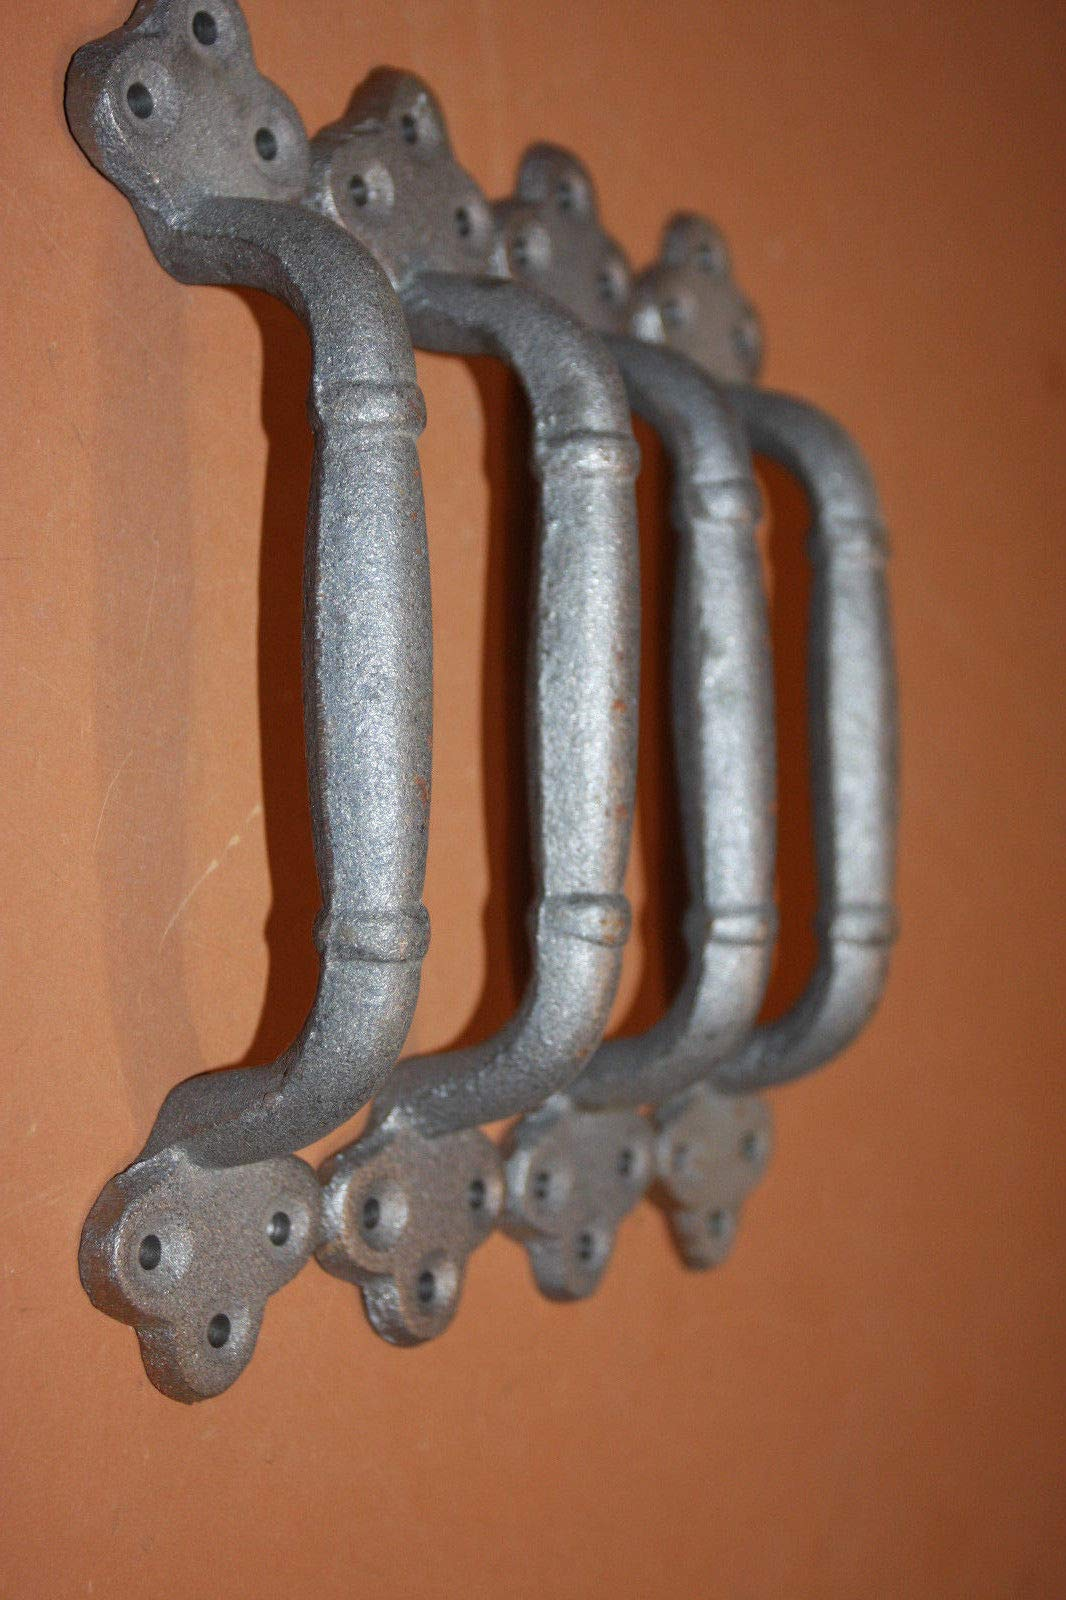 Large Decorative Gate Pulls Handles 9 inches Long Unfinished Cast Iron, 8 1/8 inch Center, Set of 4 HW-11